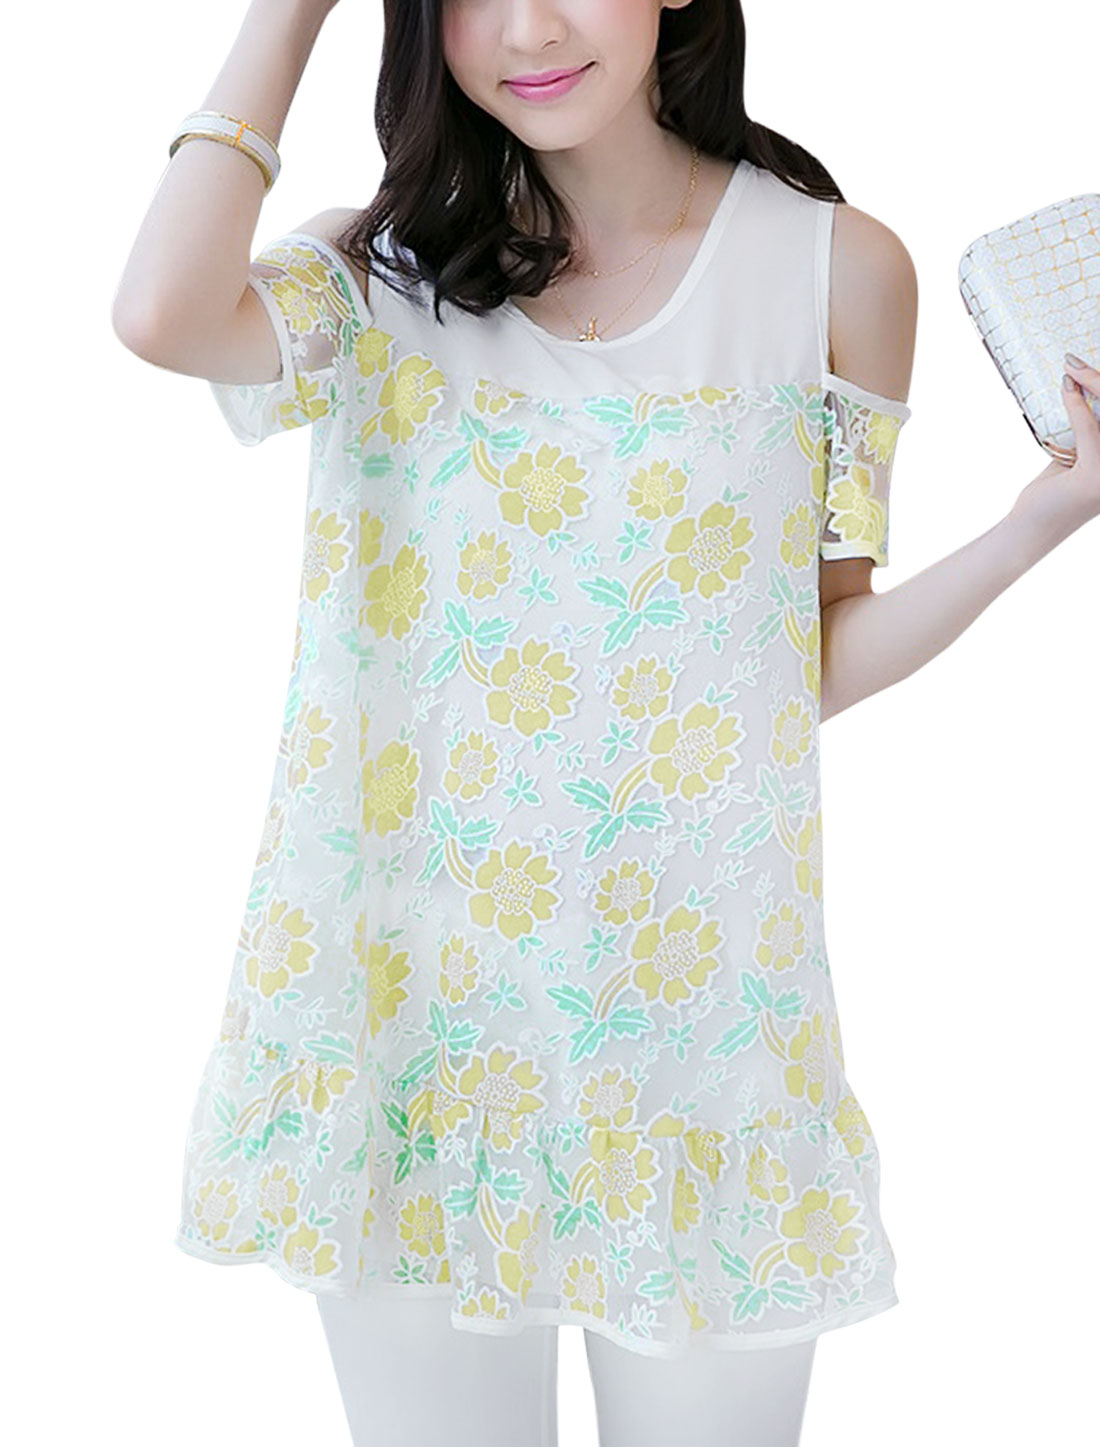 Lady Floral Prints Cut Out Shoulder Mesh Splicing Tunic Top Light Yellow M